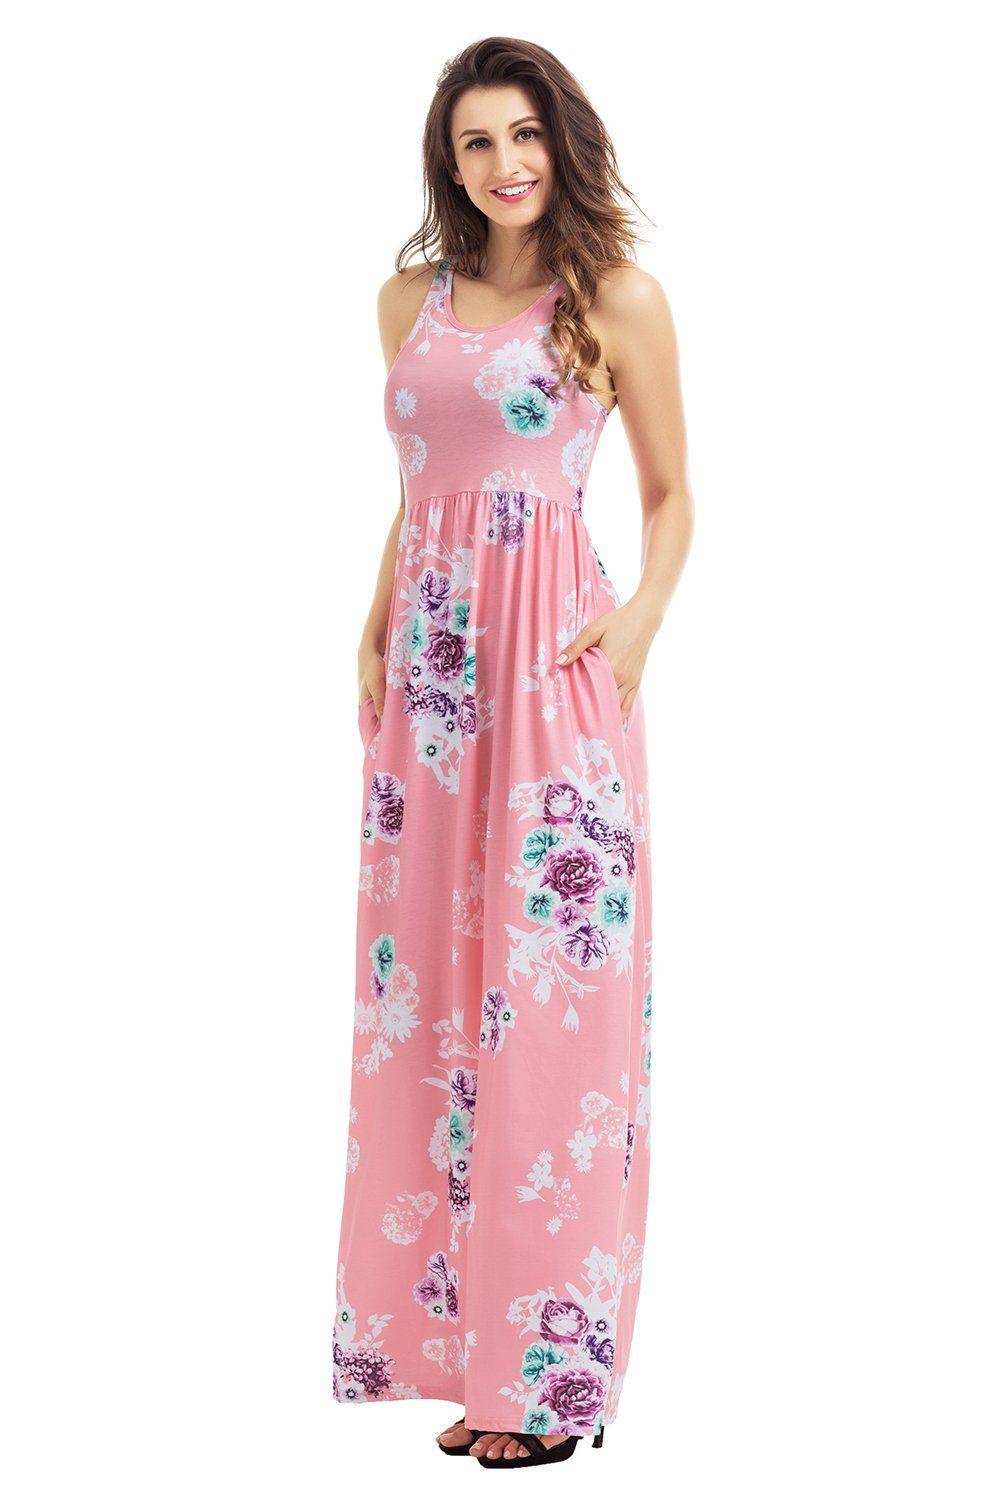 Dusty pink floral print sleeveless long boho dress products